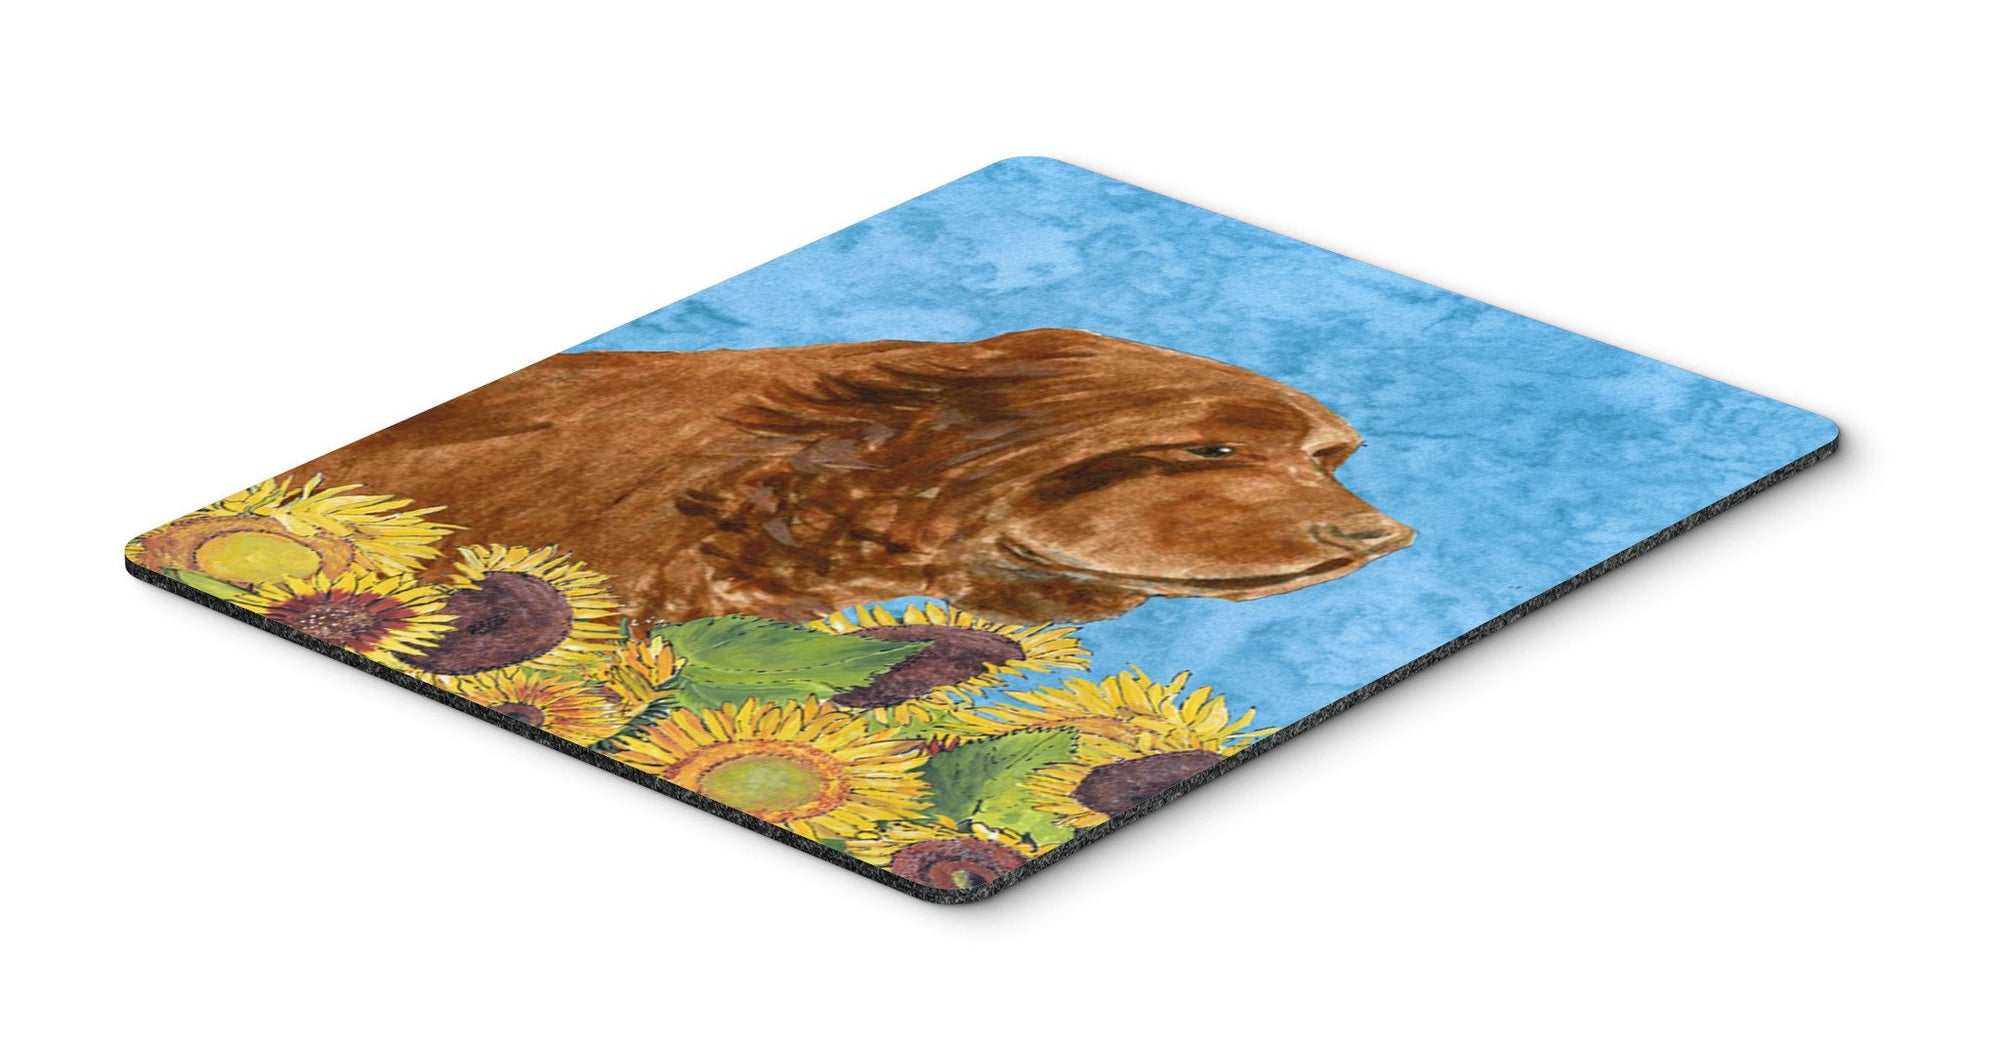 Sussex Spaniel Mouse Pad, Hot Pad or Trivet by Caroline's Treasures